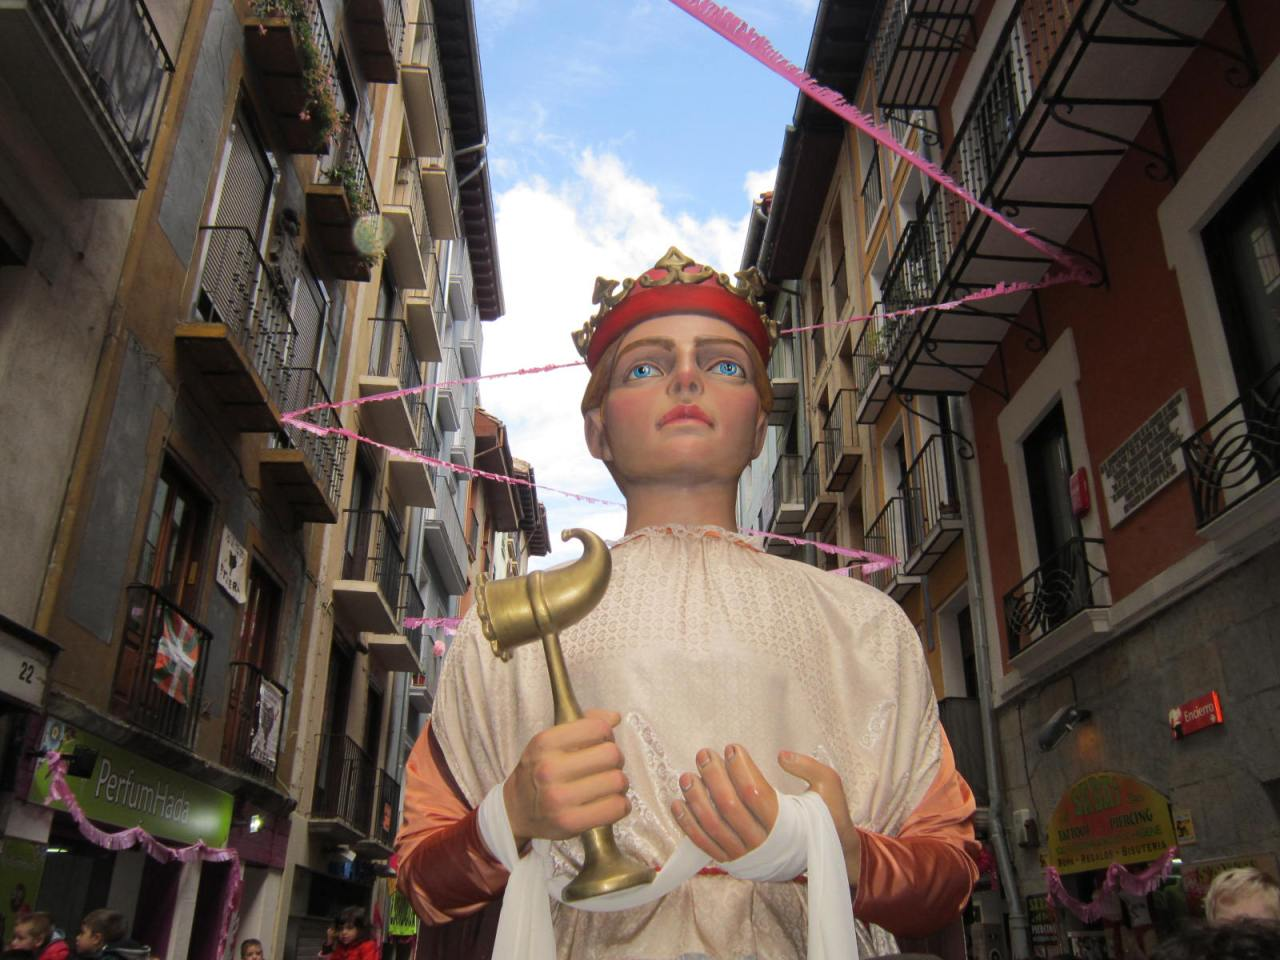 Fiesta in Pamplona (on the Camino Frances/FrenchWay)